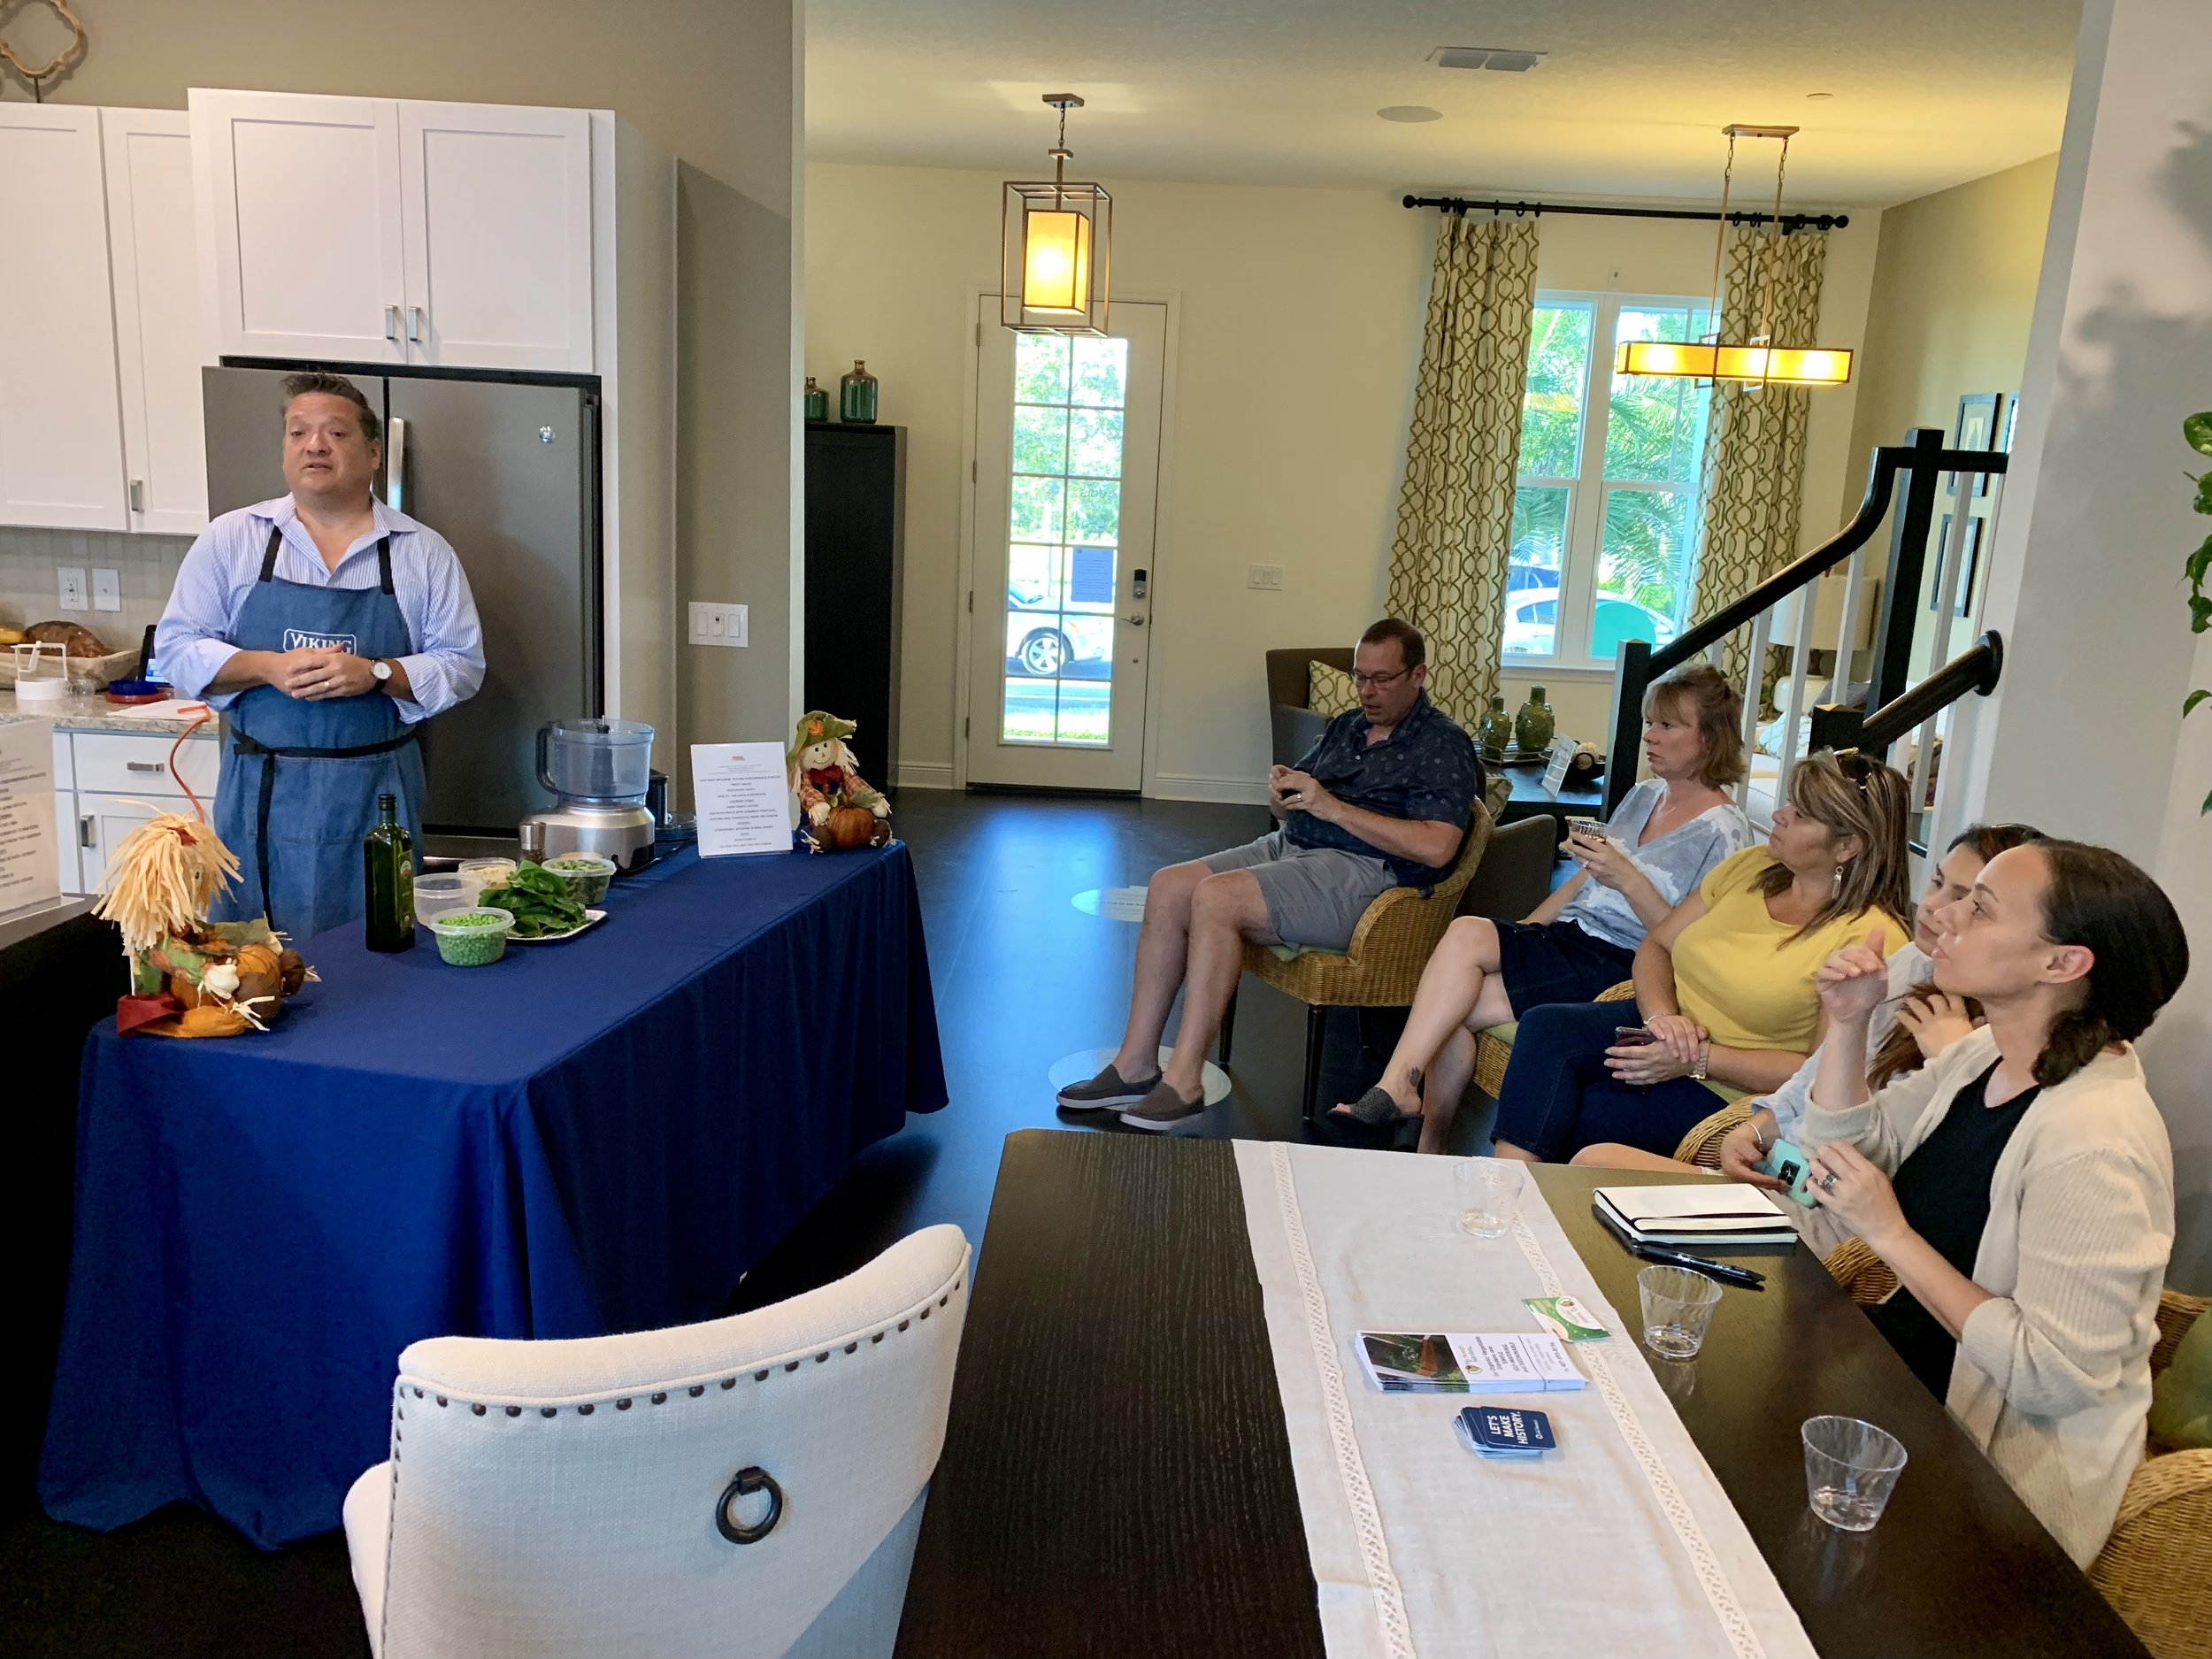 Chef Andy from Fueling Performance Athletes teaching how to prepare flavorful dishes with home-grown produce